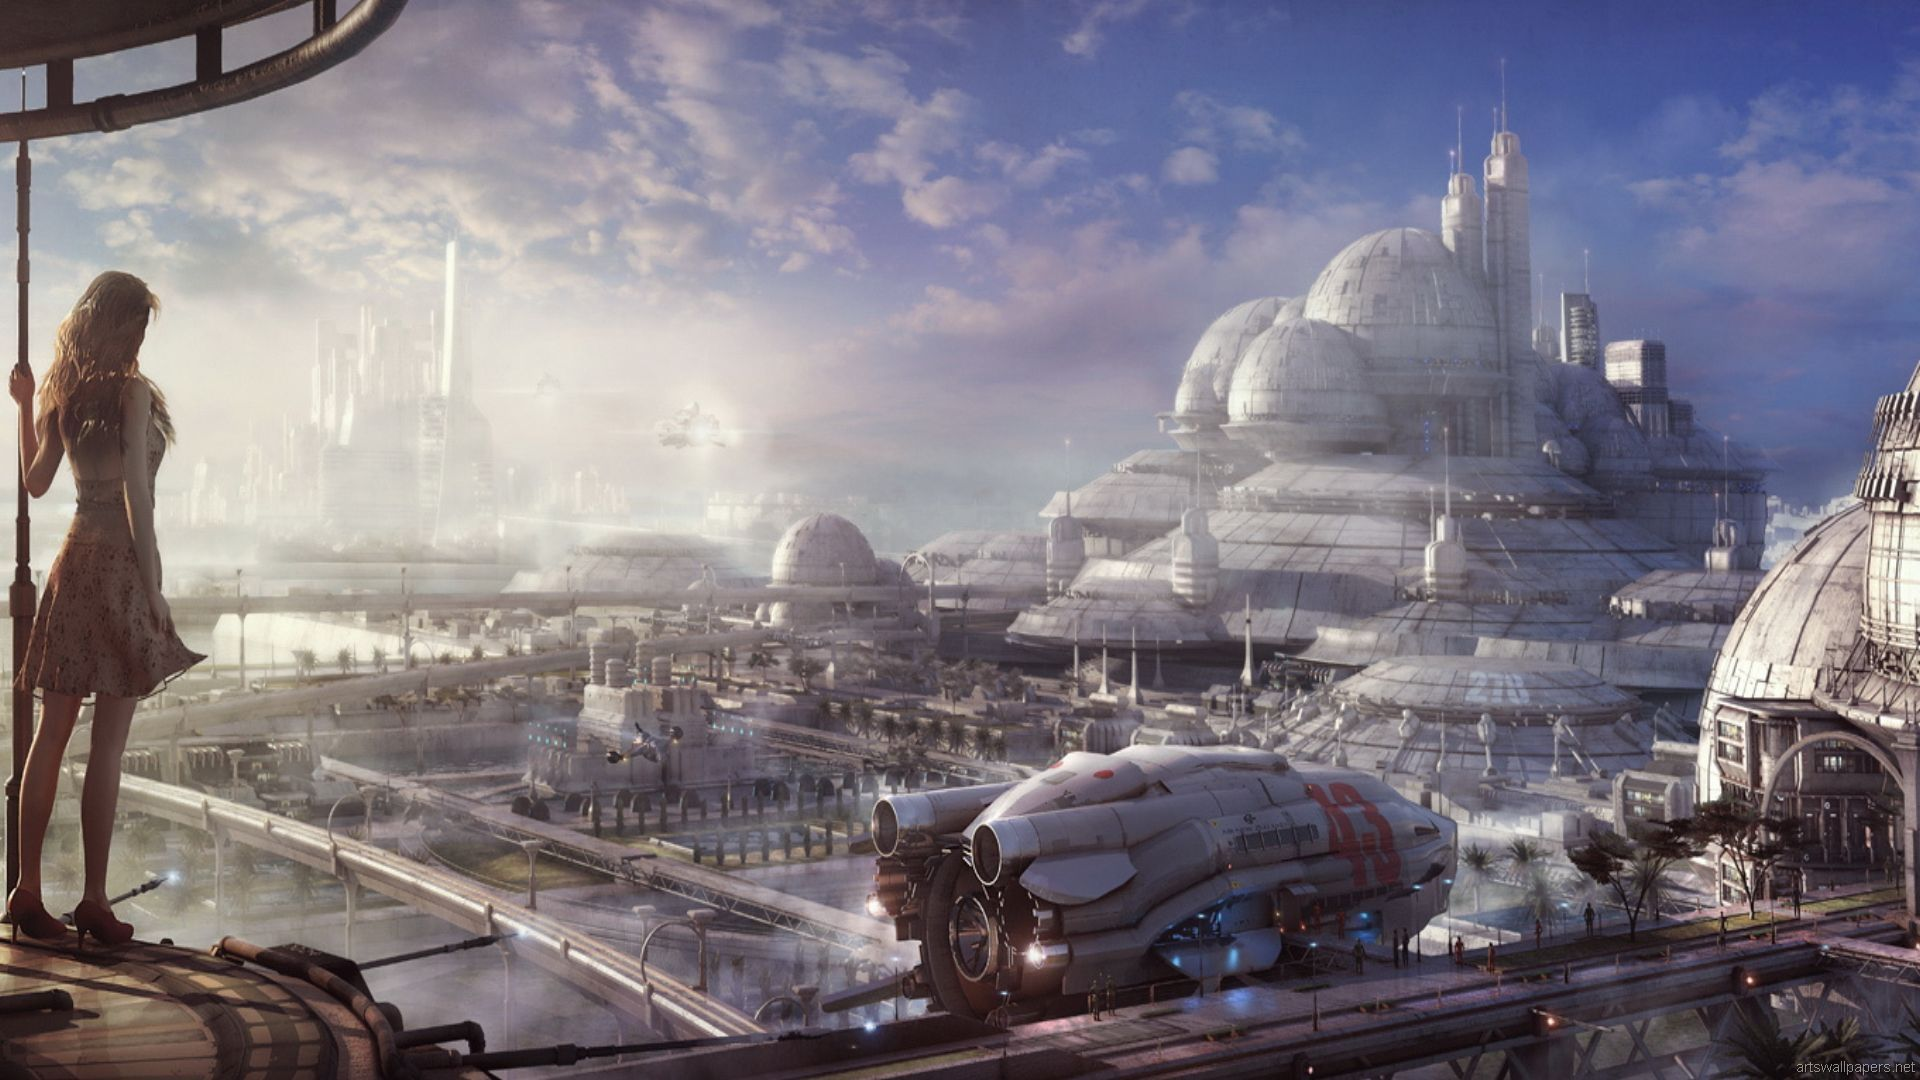 Future Space City Wallpapers - Top Free Future Space City ...